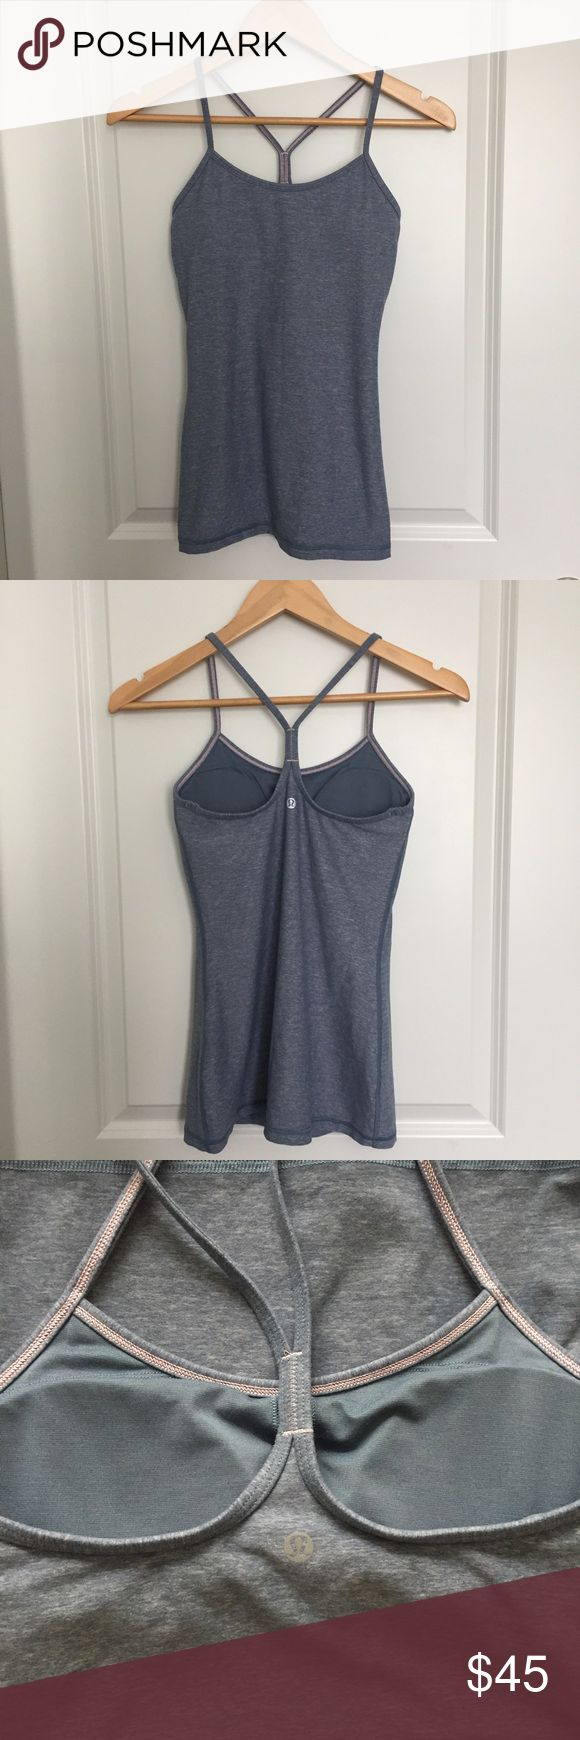 Lululemon Heathered Blue Denim Power Y Tank Beautiful light blue grey color. Good used condition with slight pilling on straps. Comes with bra cup inserts. Size 4. lululemon athletica Tops